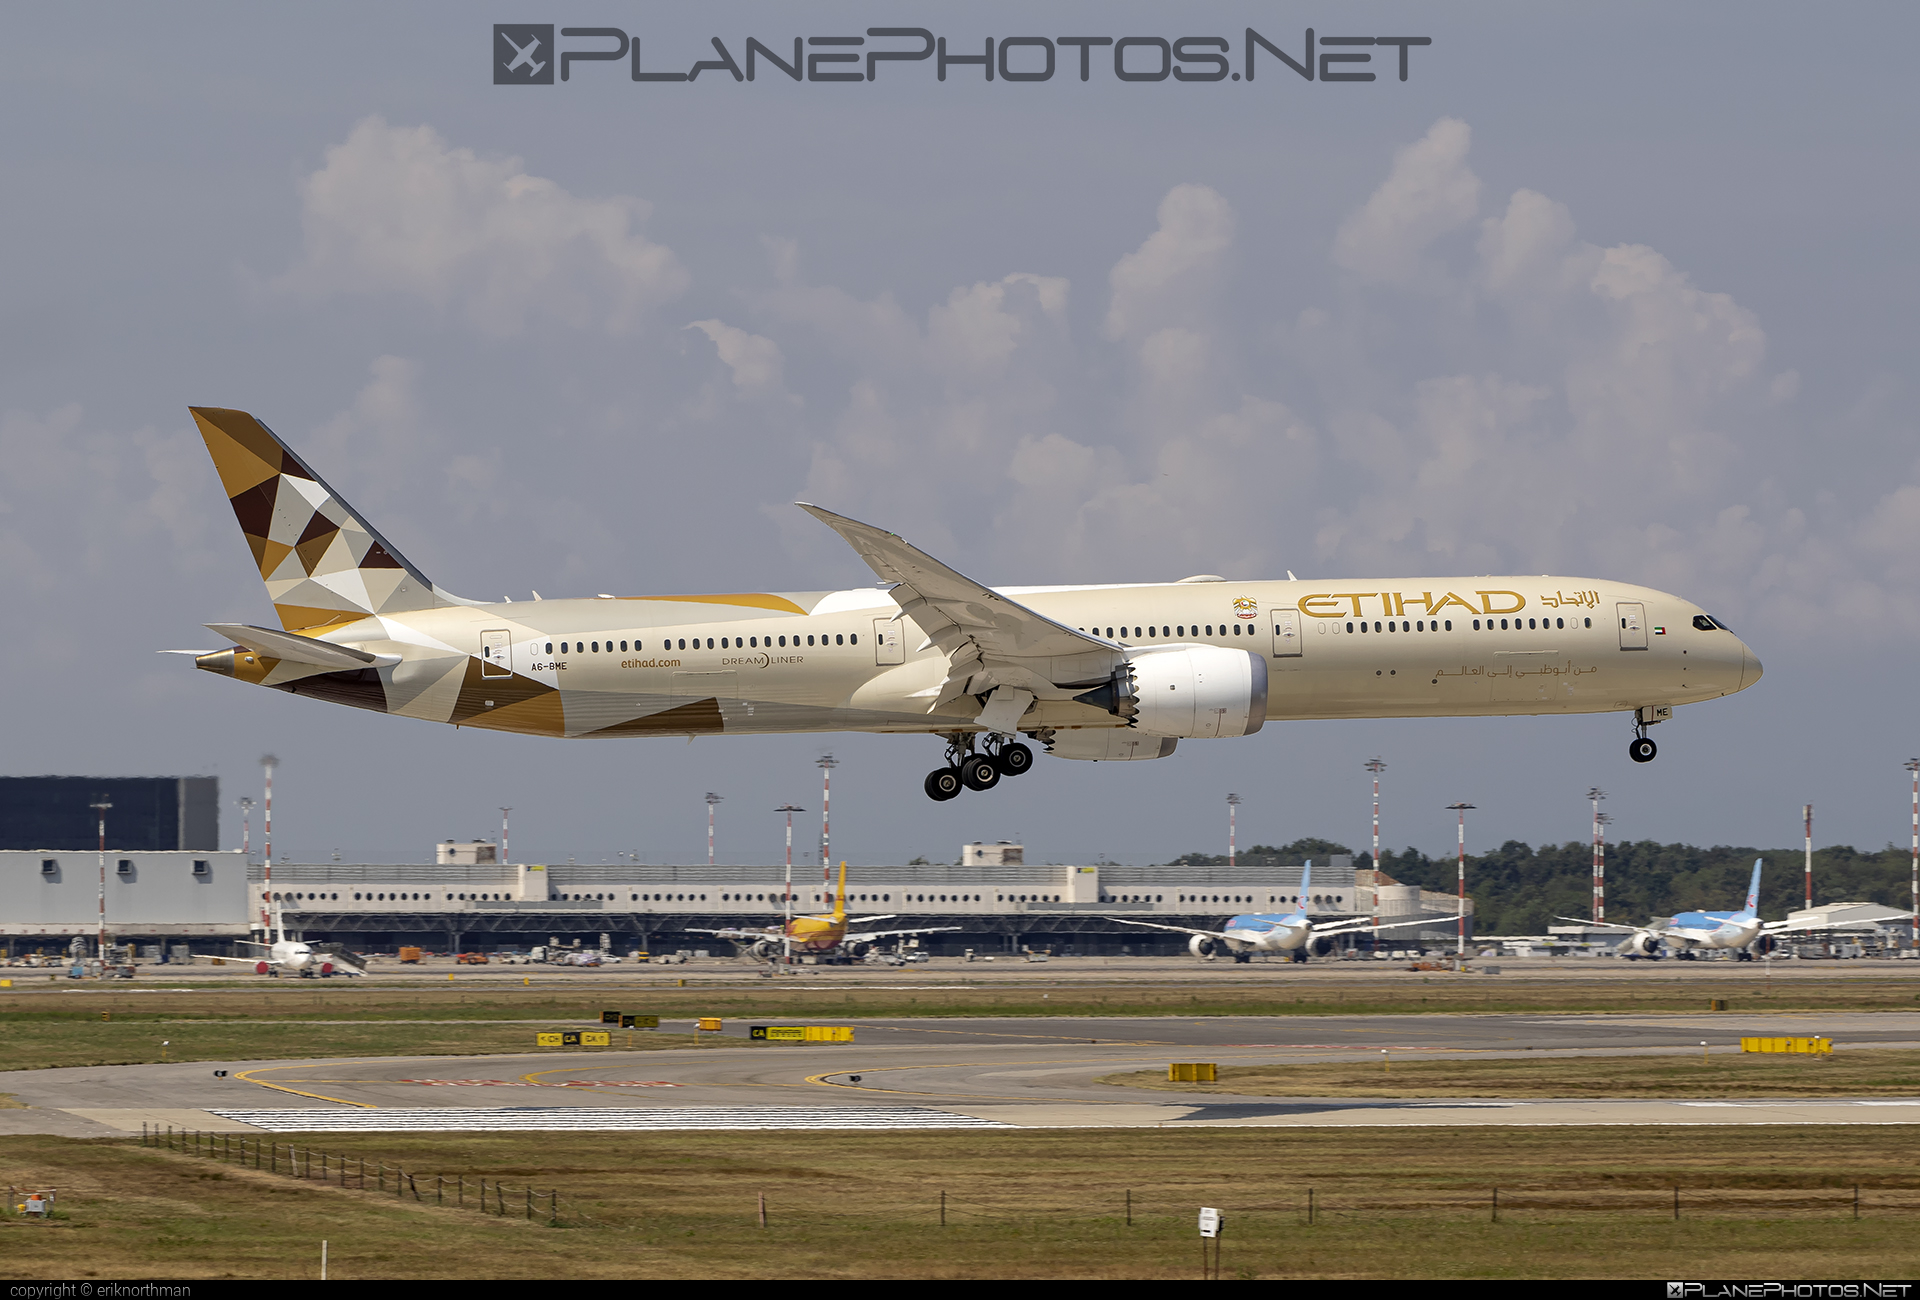 Boeing 787-10 Dreamliner - A6-BME operated by Etihad Airways #b787 #boeing #boeing787 #dreamliner #etihad #etihadairways